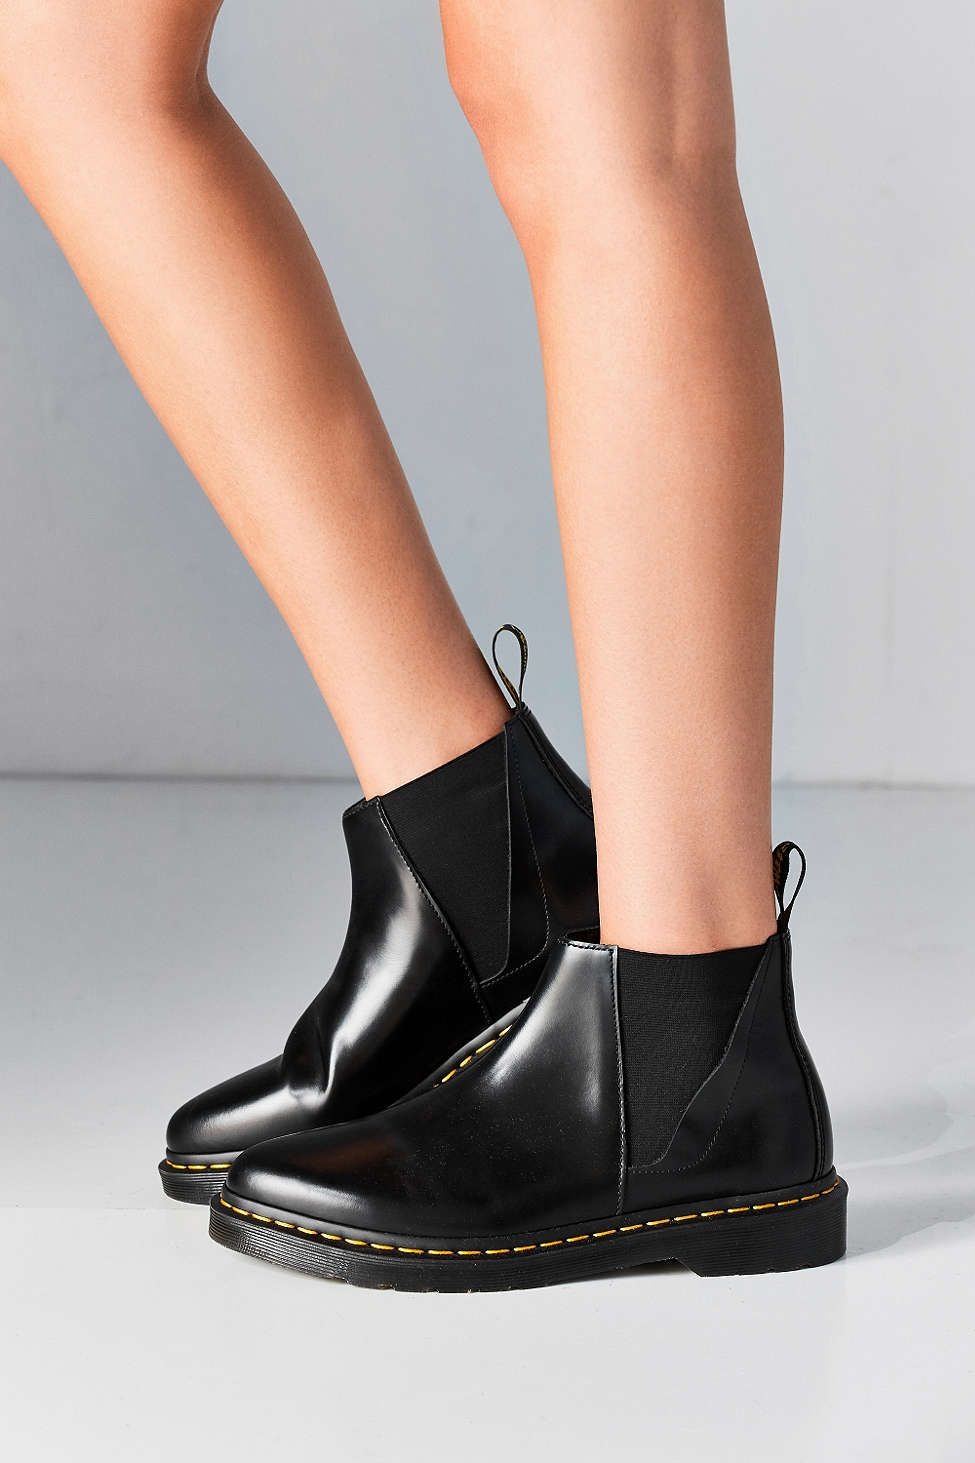 f0ce07276cc26 Dr. Martens Bianca Chelsea Boot - Urban Outfitters   Shoes Shoes ...